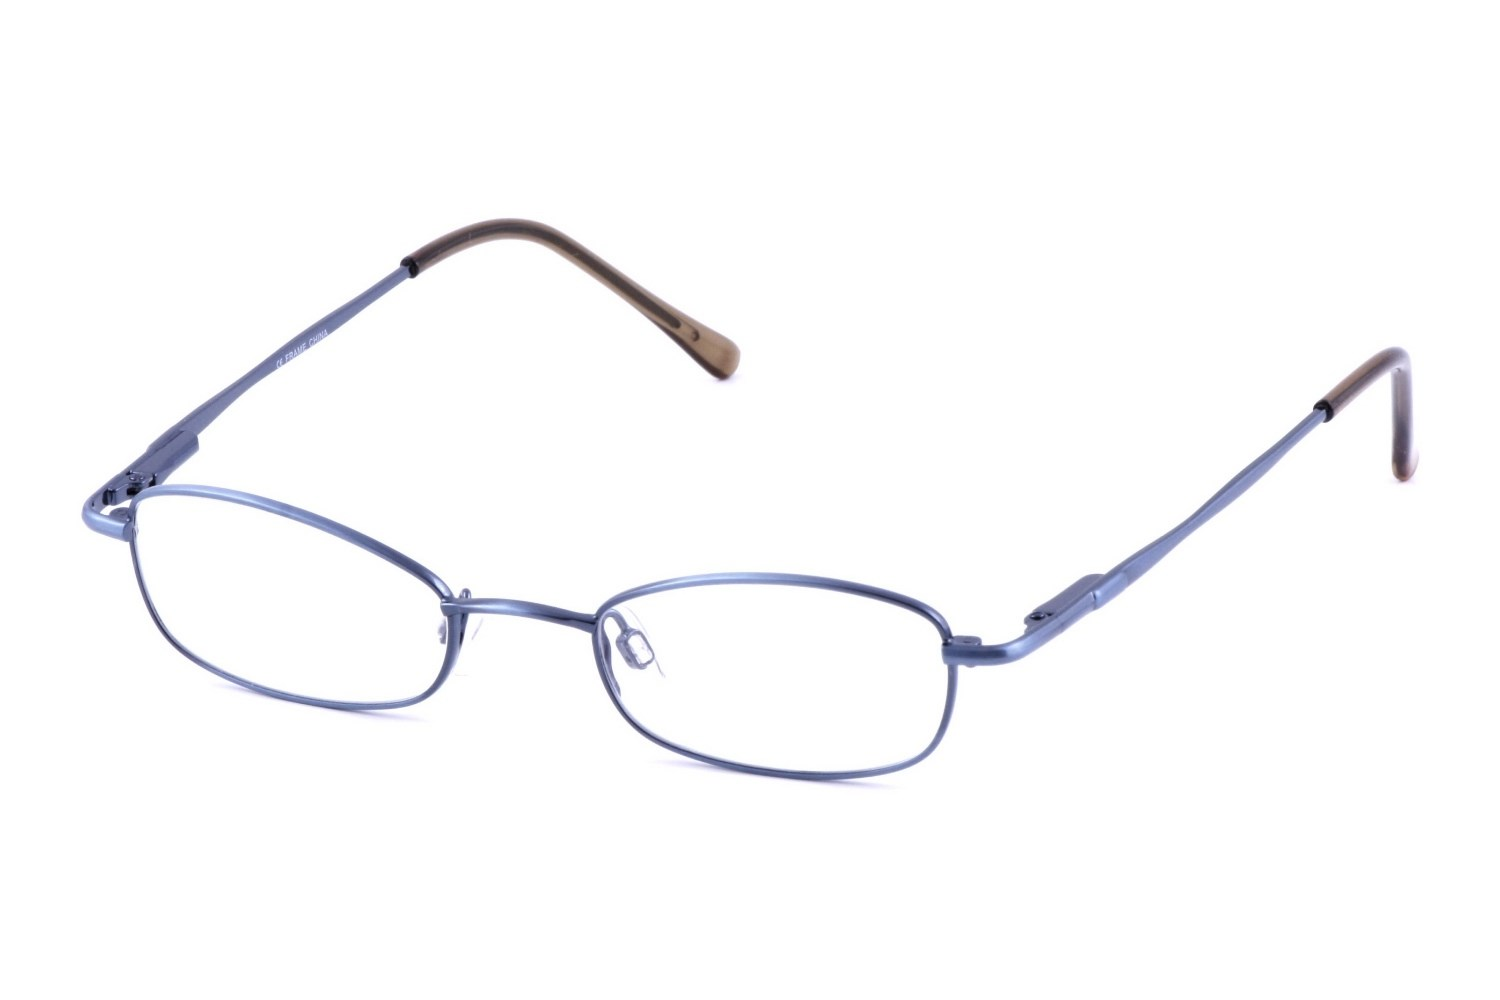 Artistic Values A 381 Prescription Eyeglasses Frames